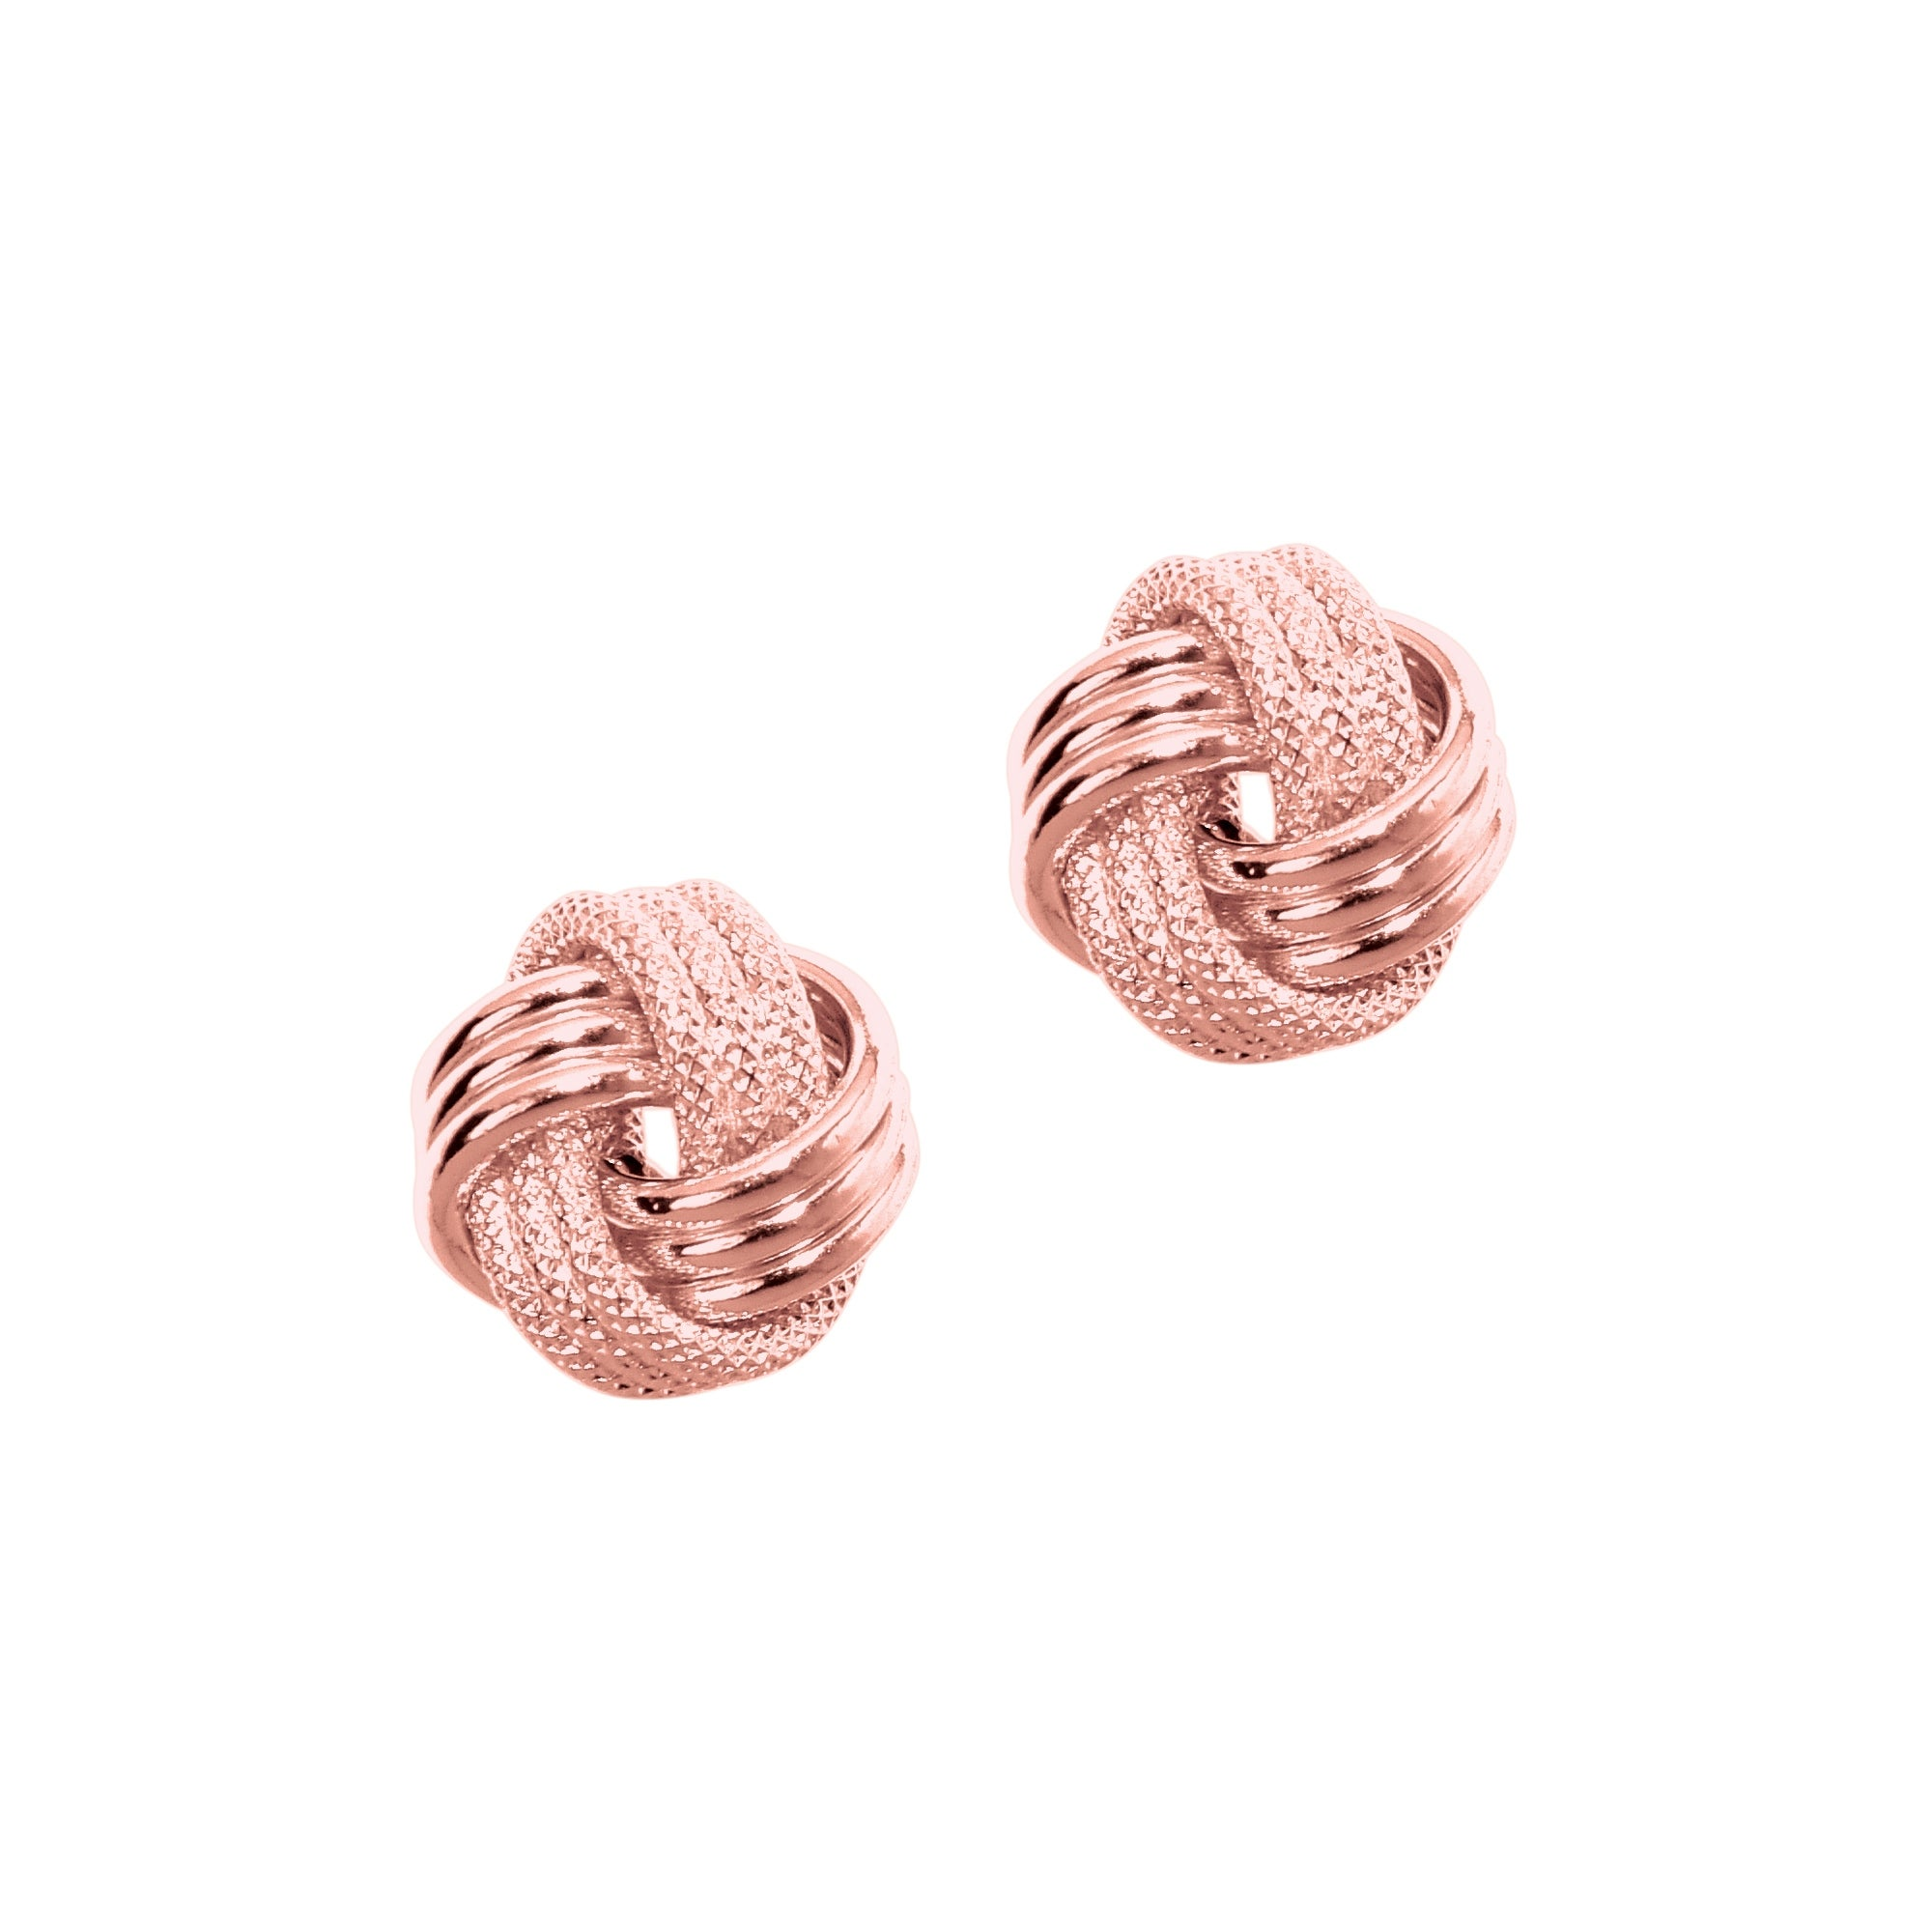 Mcs Jewelry Inc 14 Karat Rose Gold Love Knot Earrings Diameter 9mm Pink On Free Shipping Today 14078626